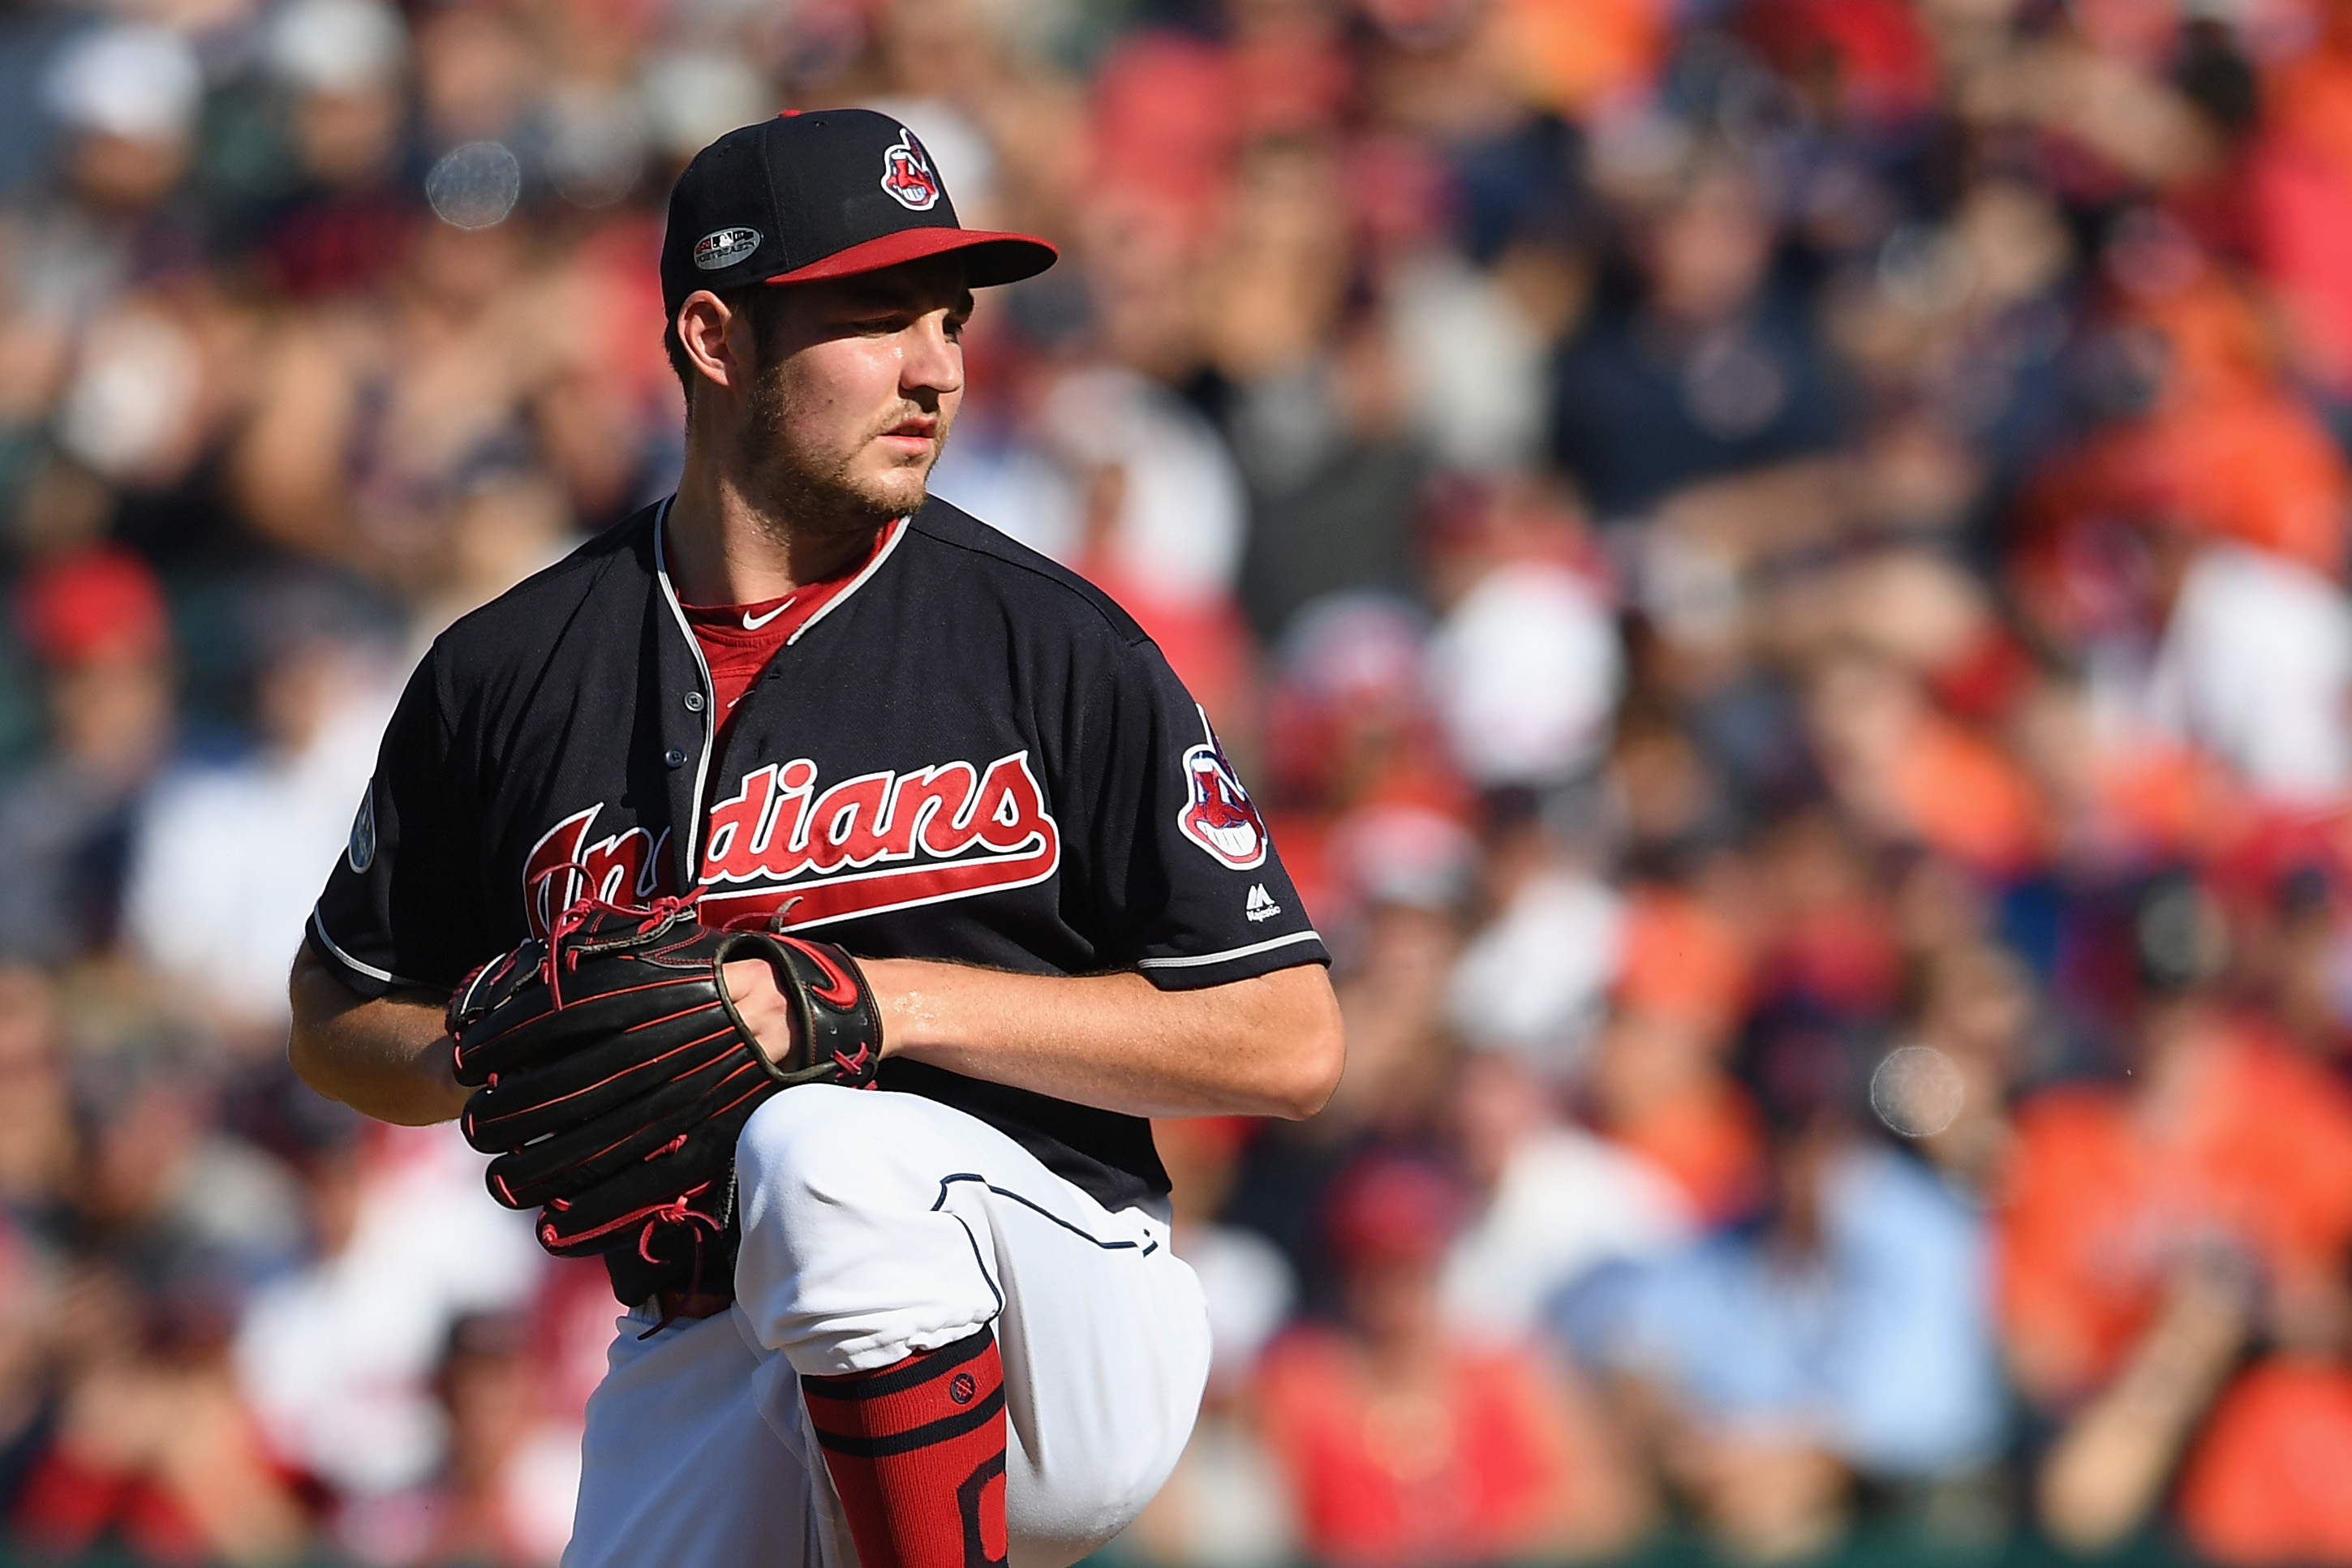 Bauer thrust himself in contention for the All-Star game last year